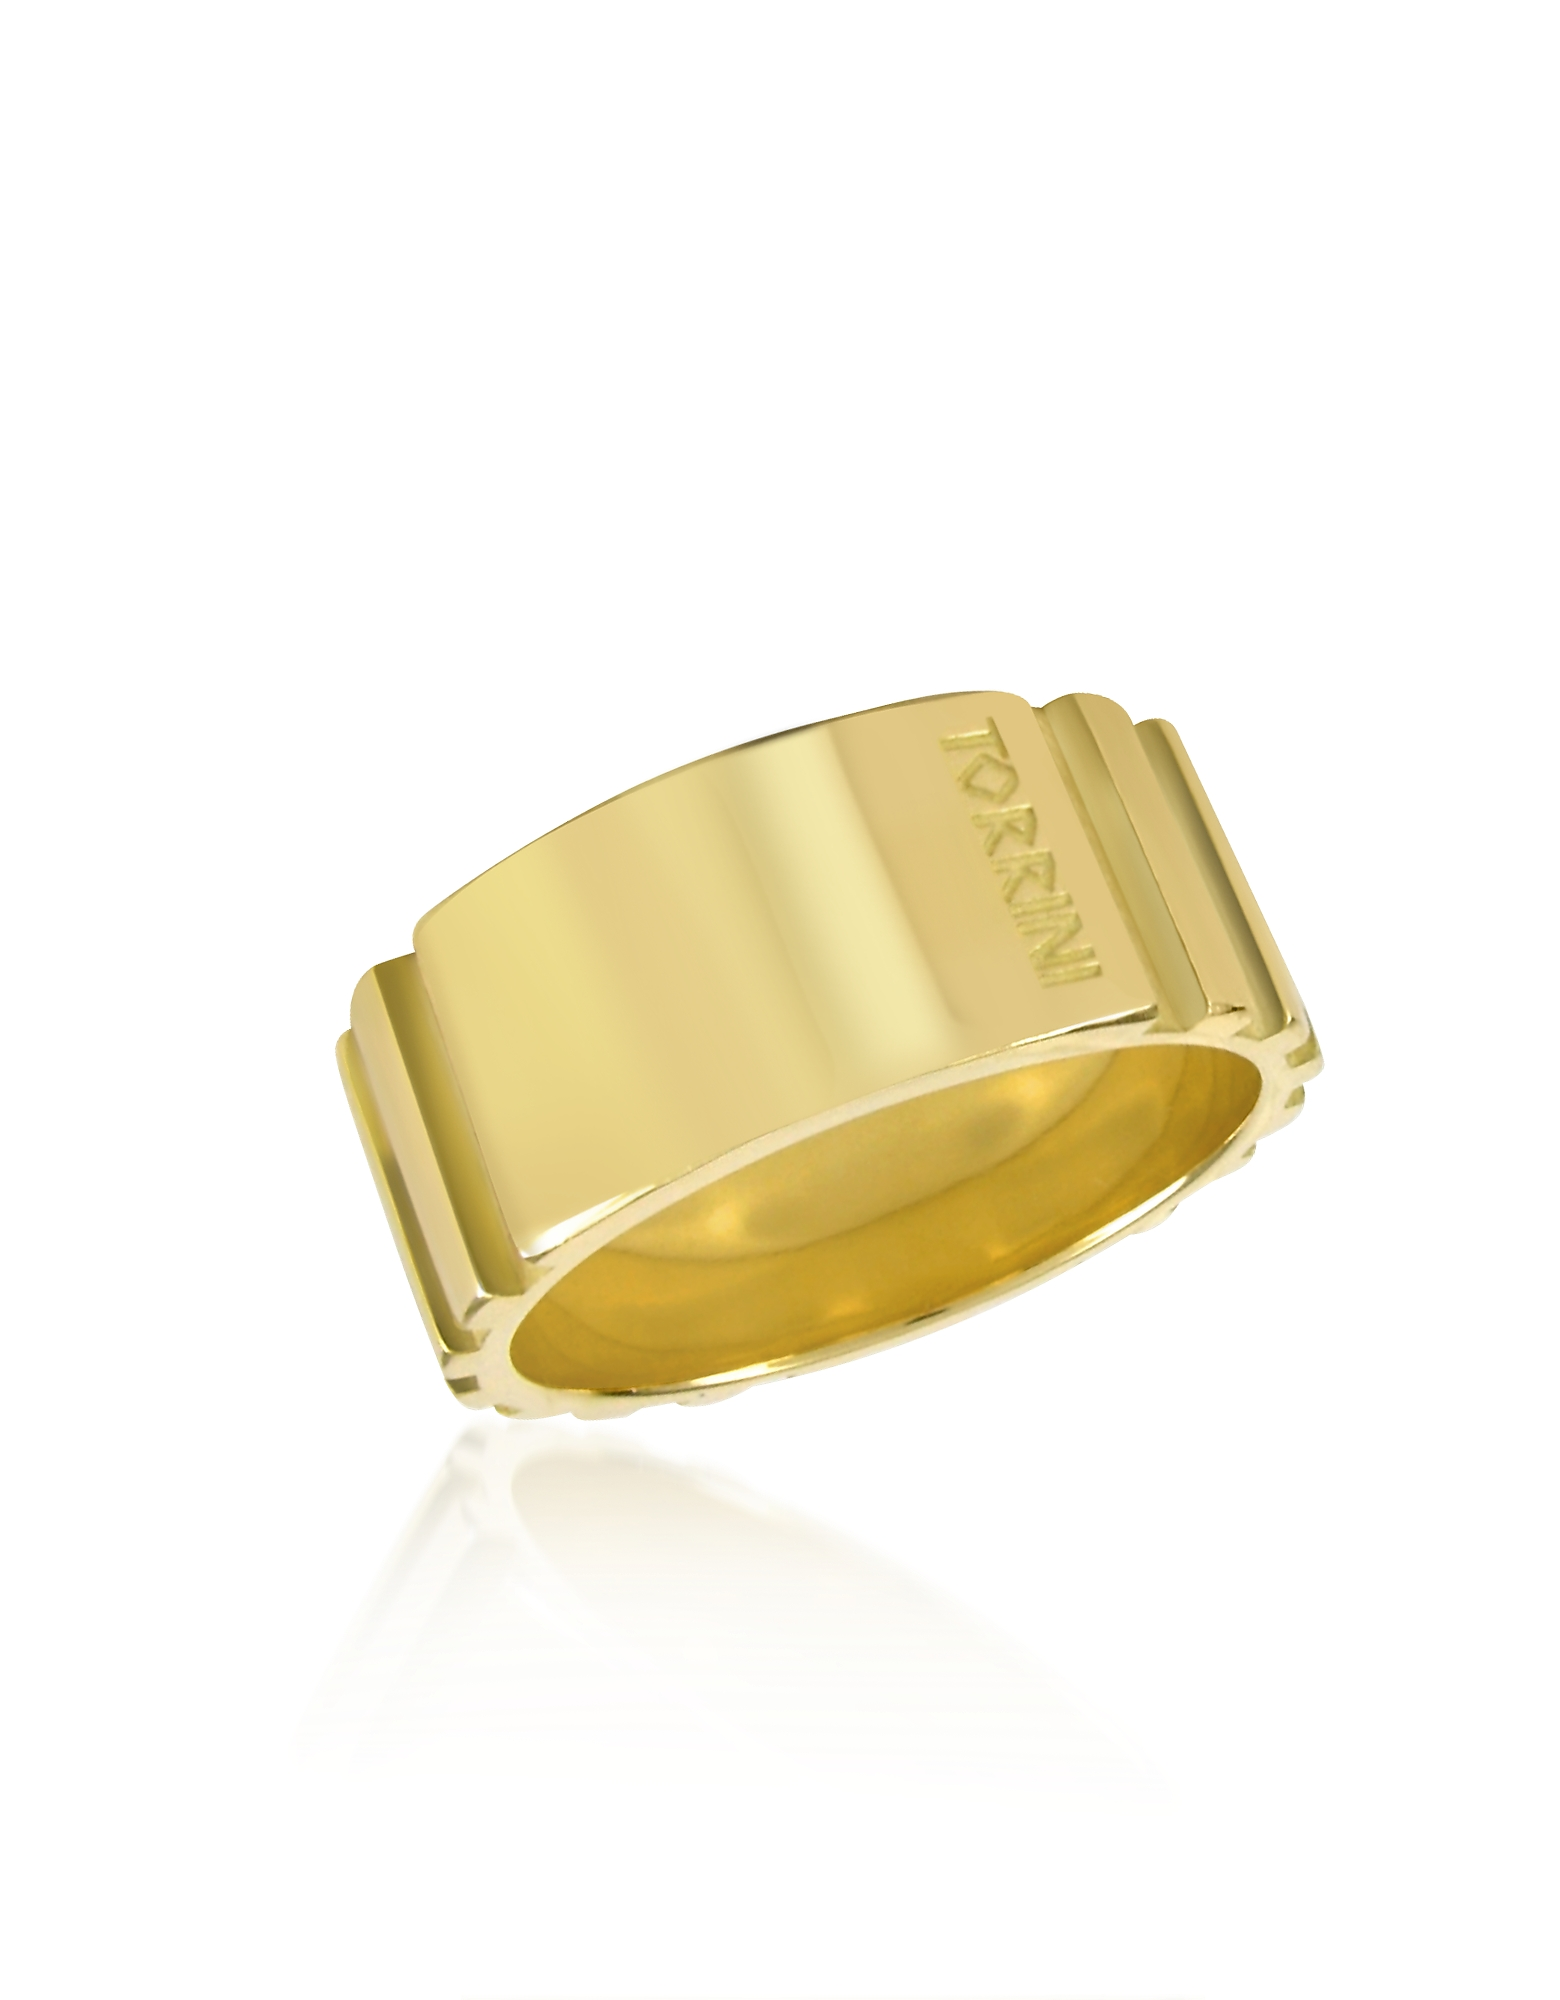 Torrini Designer Men's Rings, Stripes - 18k Yellow Gold Tall Band Ring